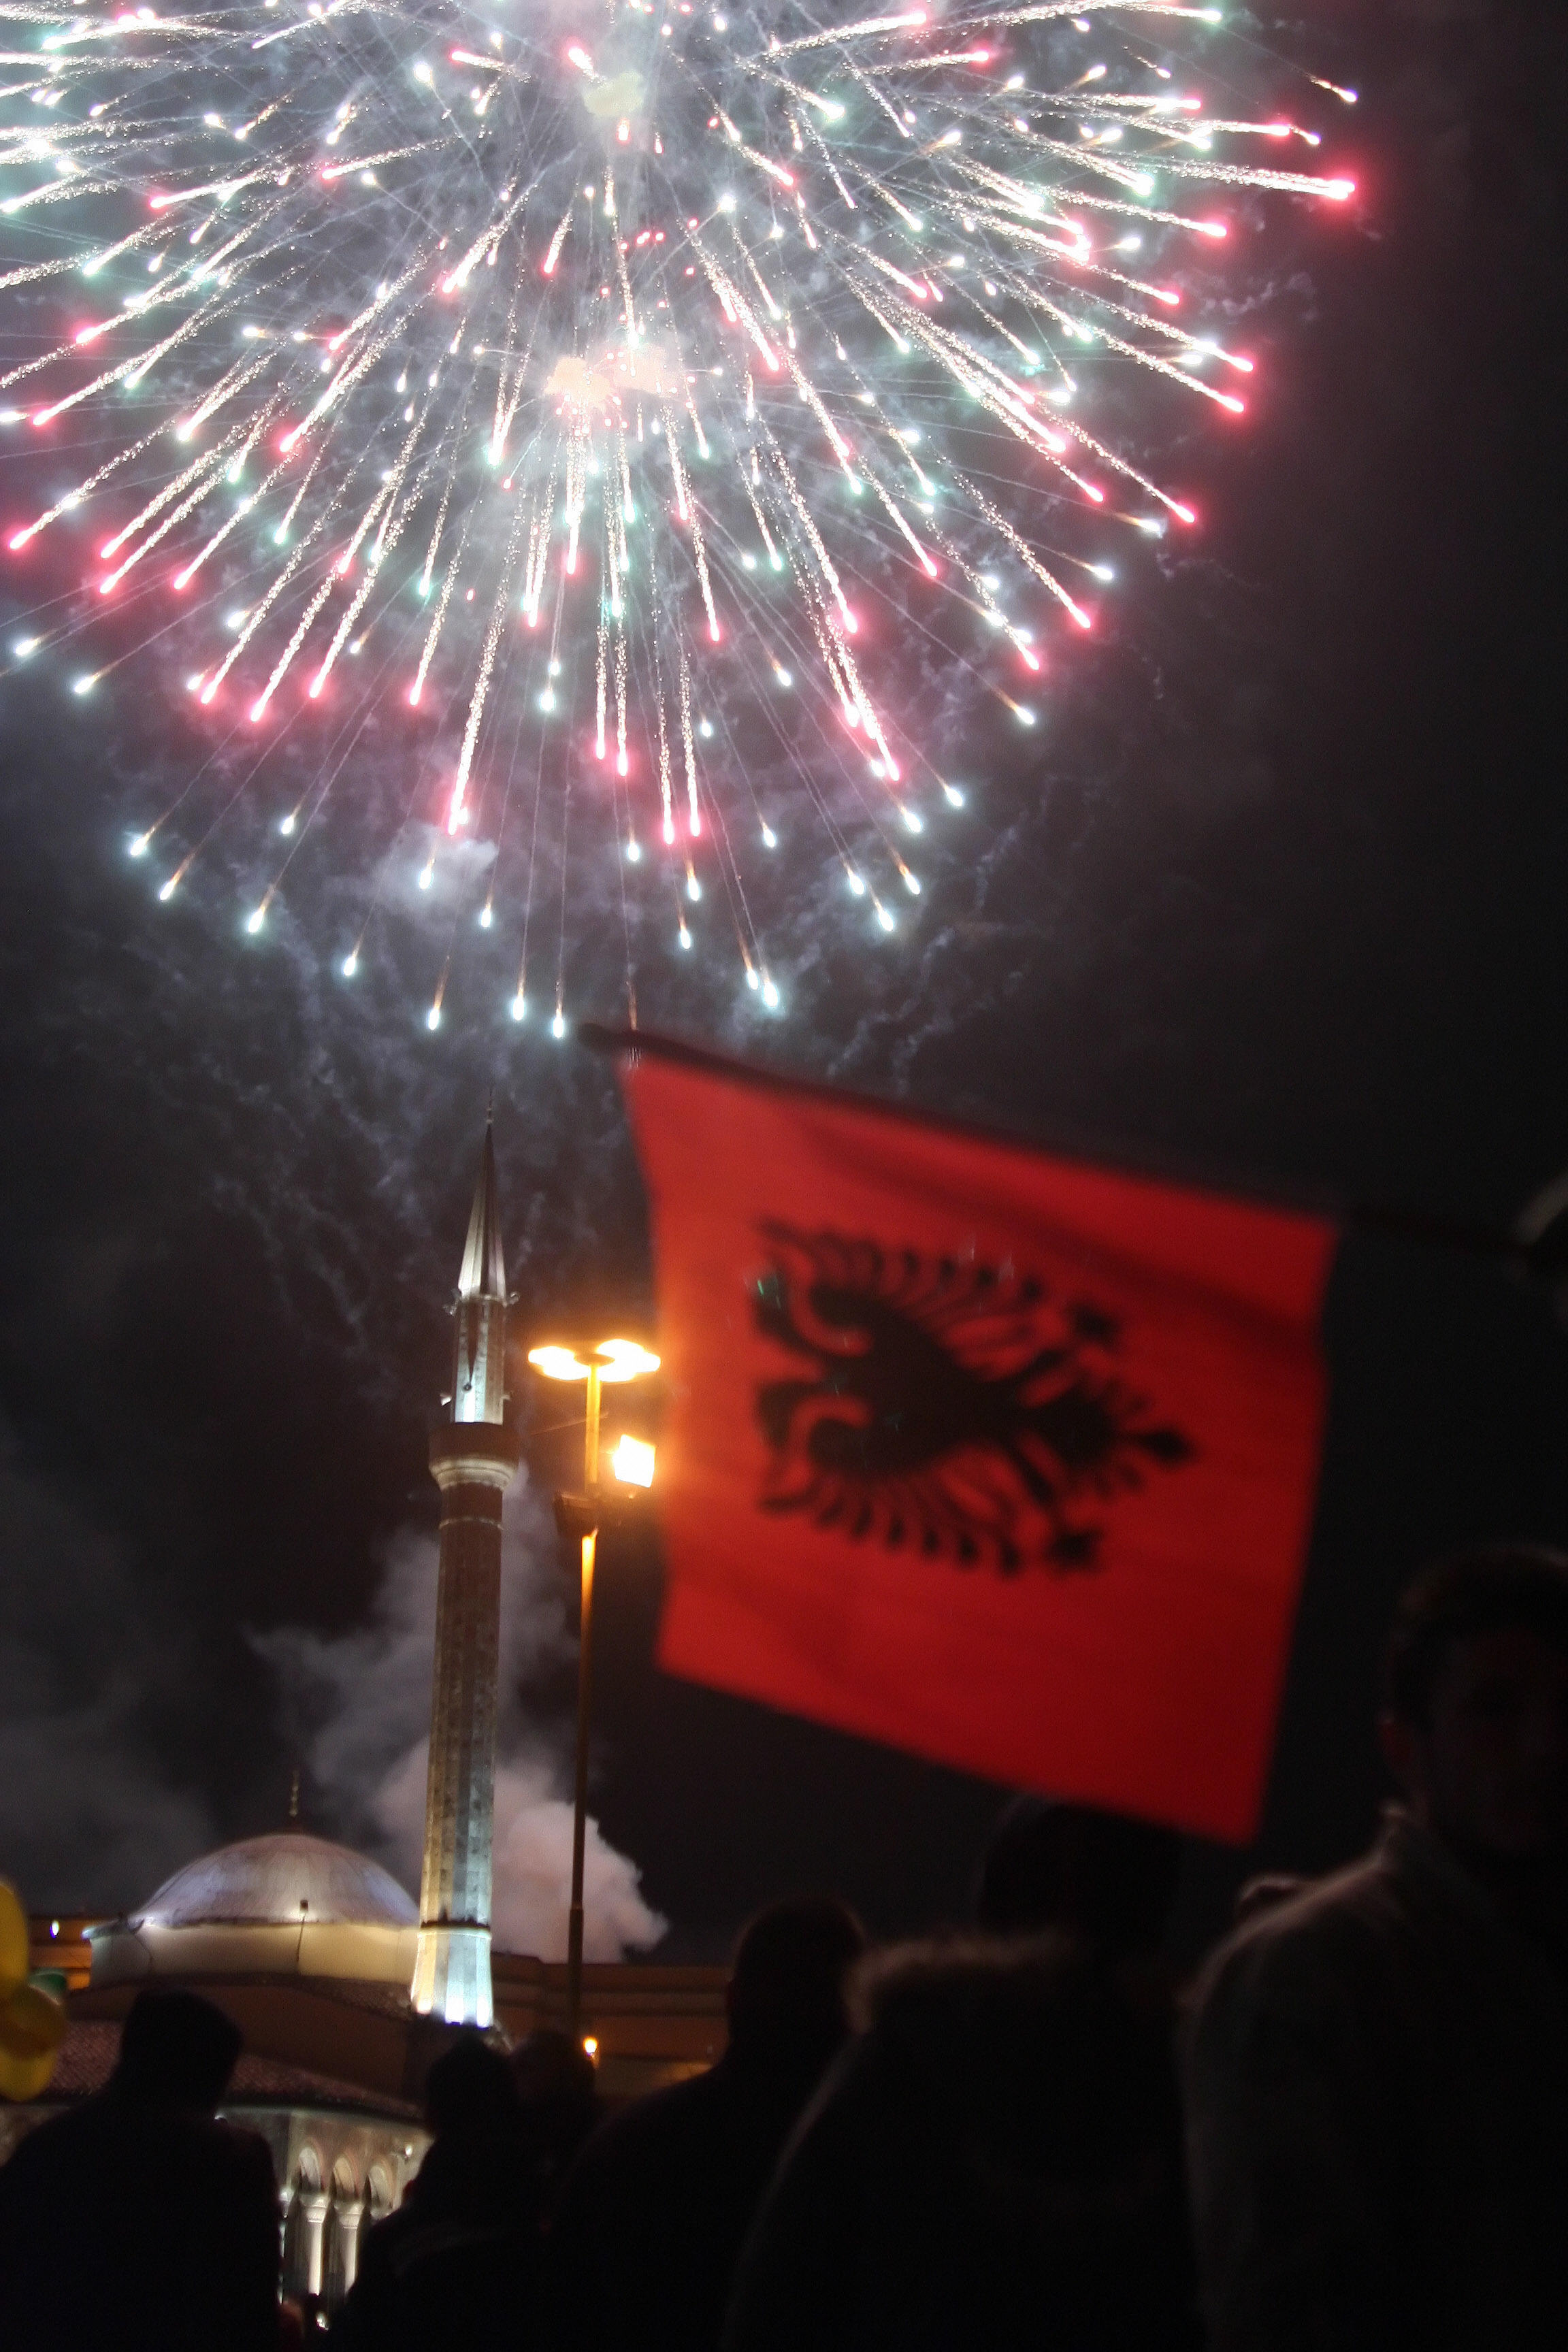 Kosovo's independence day.